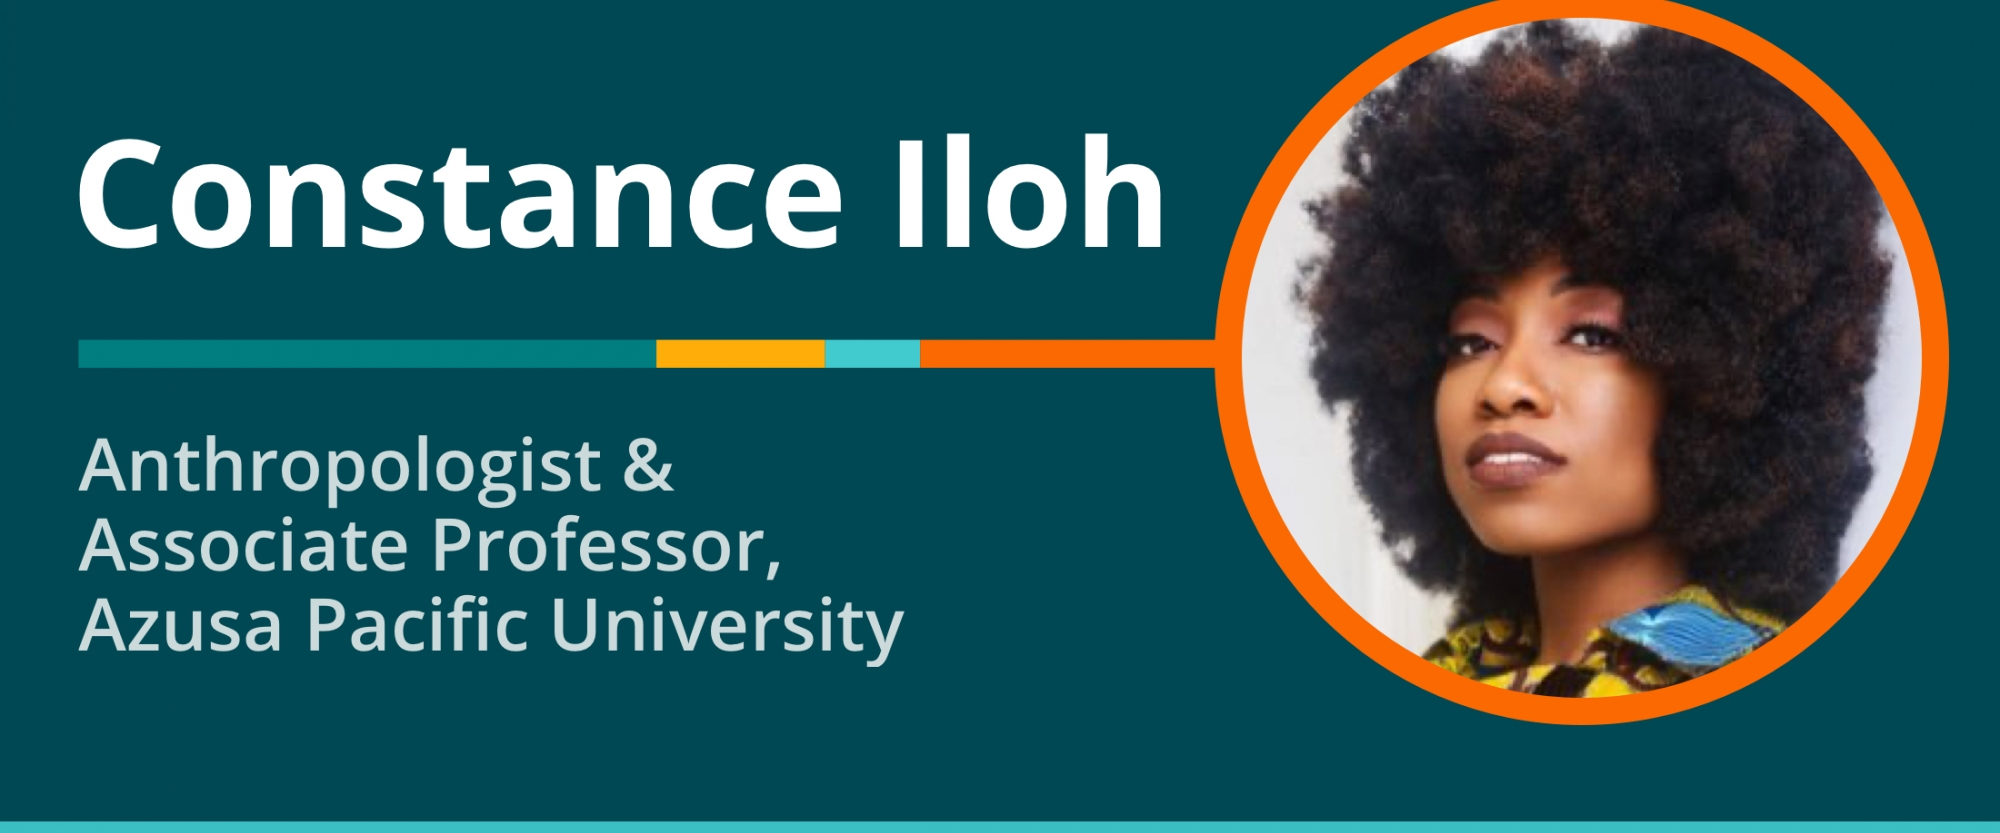 Scholarship to Practice 10/7/20: Transcript of Conversation With Constance Iloh, Educational Anthropologist